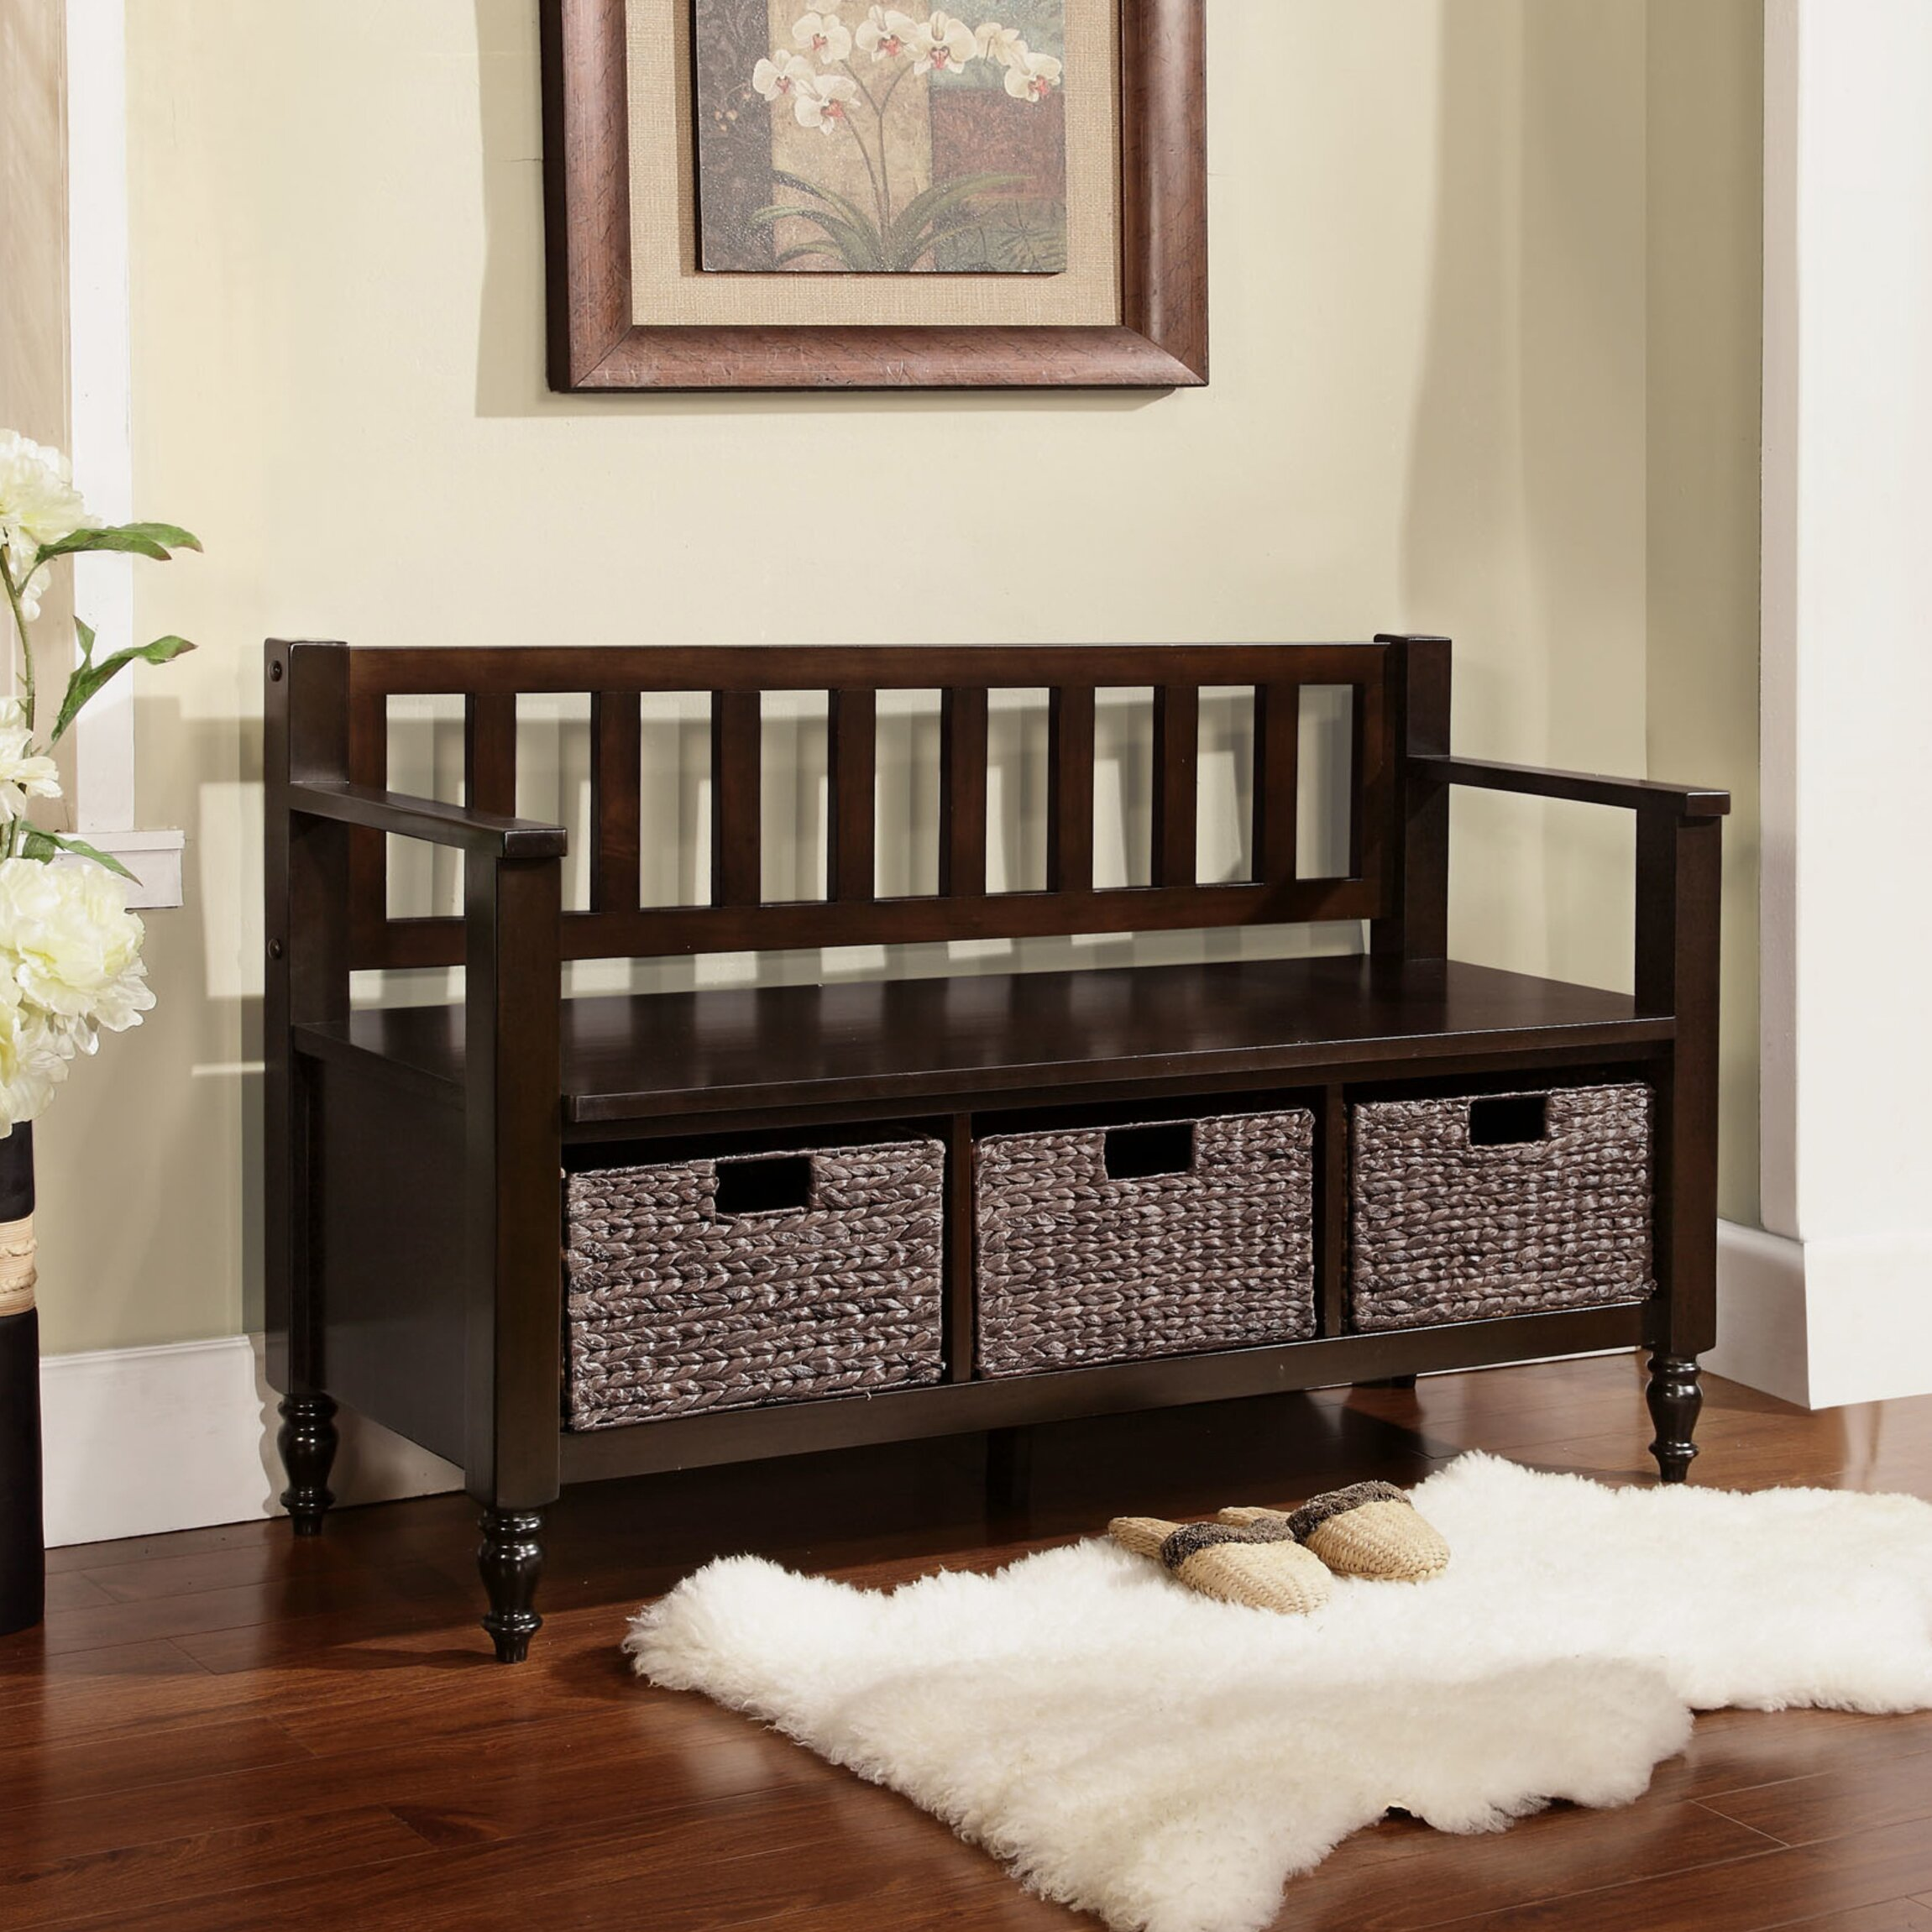 Foyer Bench Pictures : Simpli home dakota entryway bench reviews wayfair